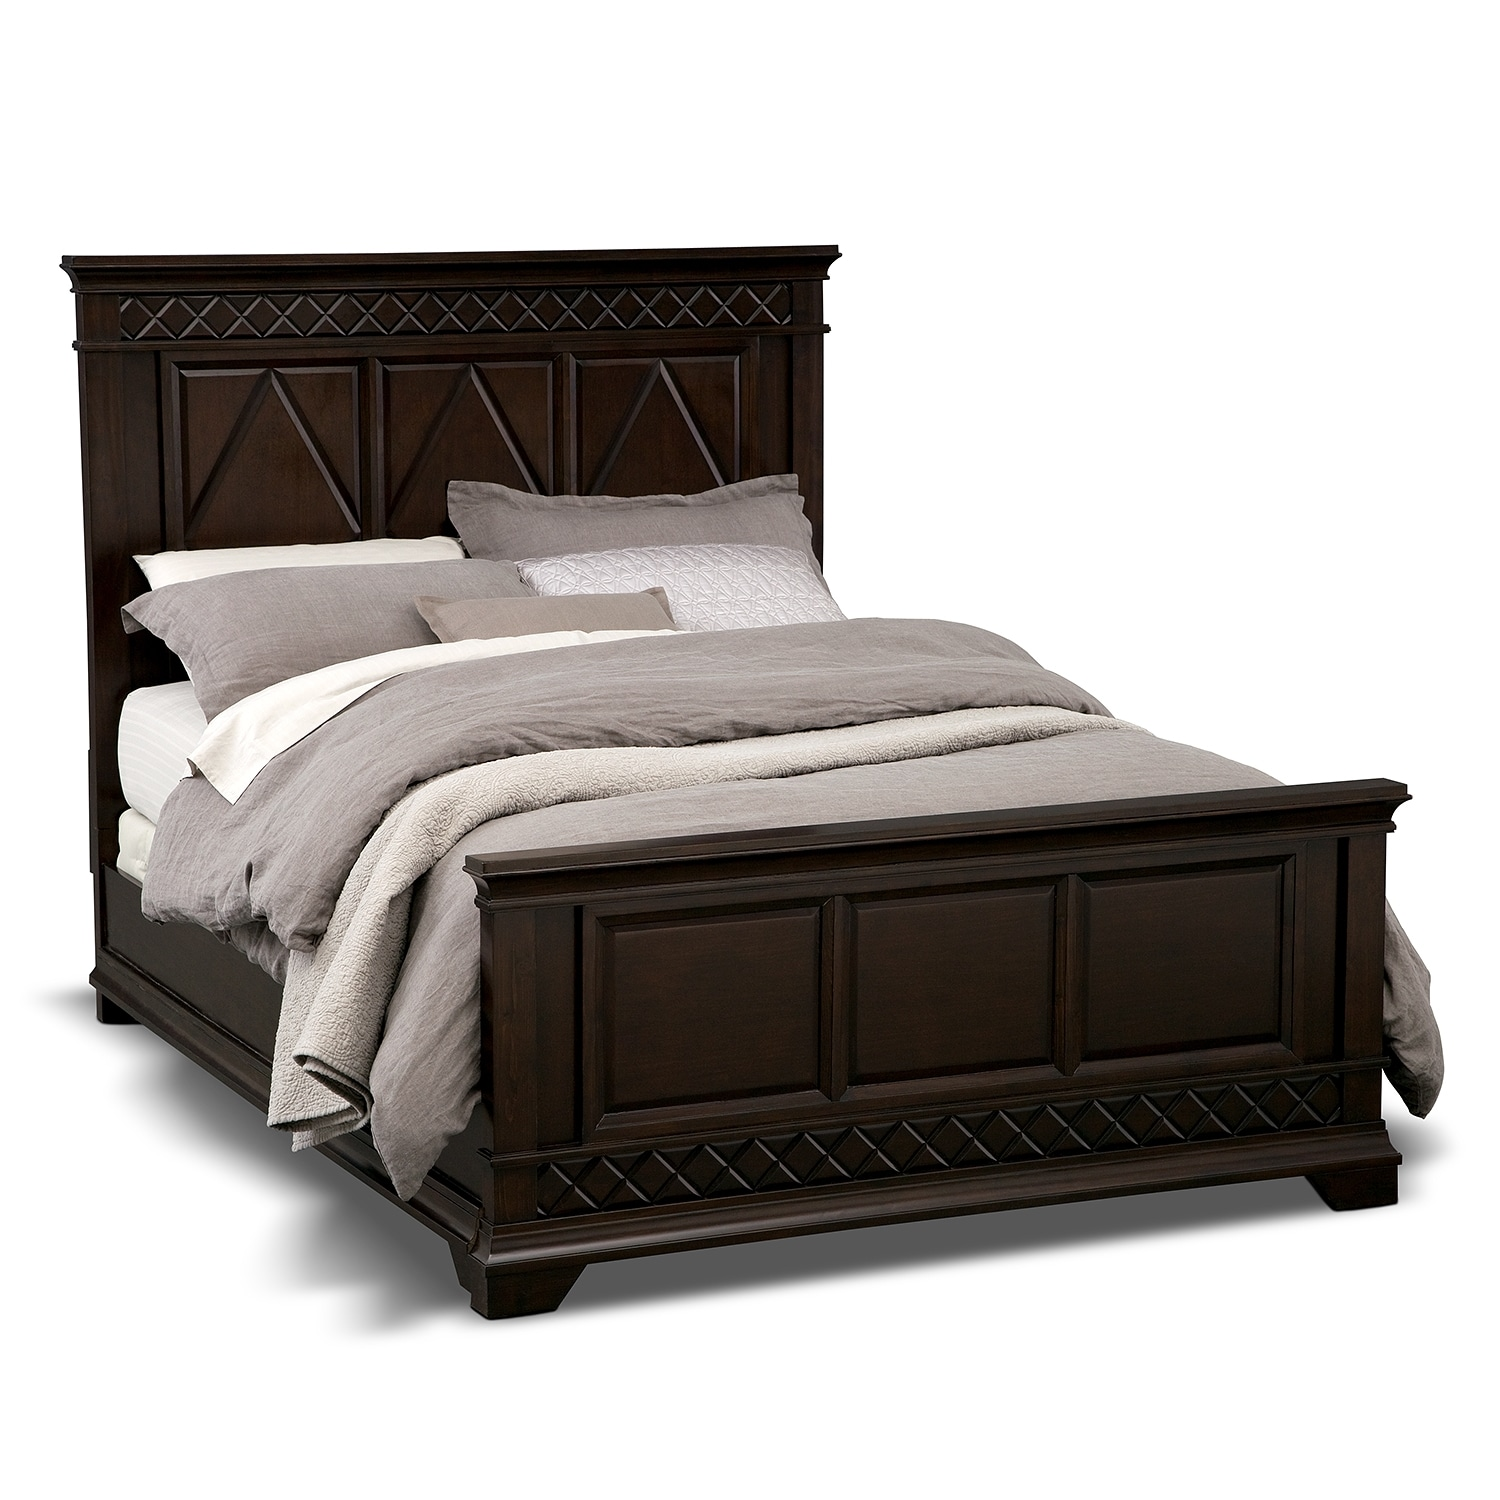 bedroom furniture diamante queen bed